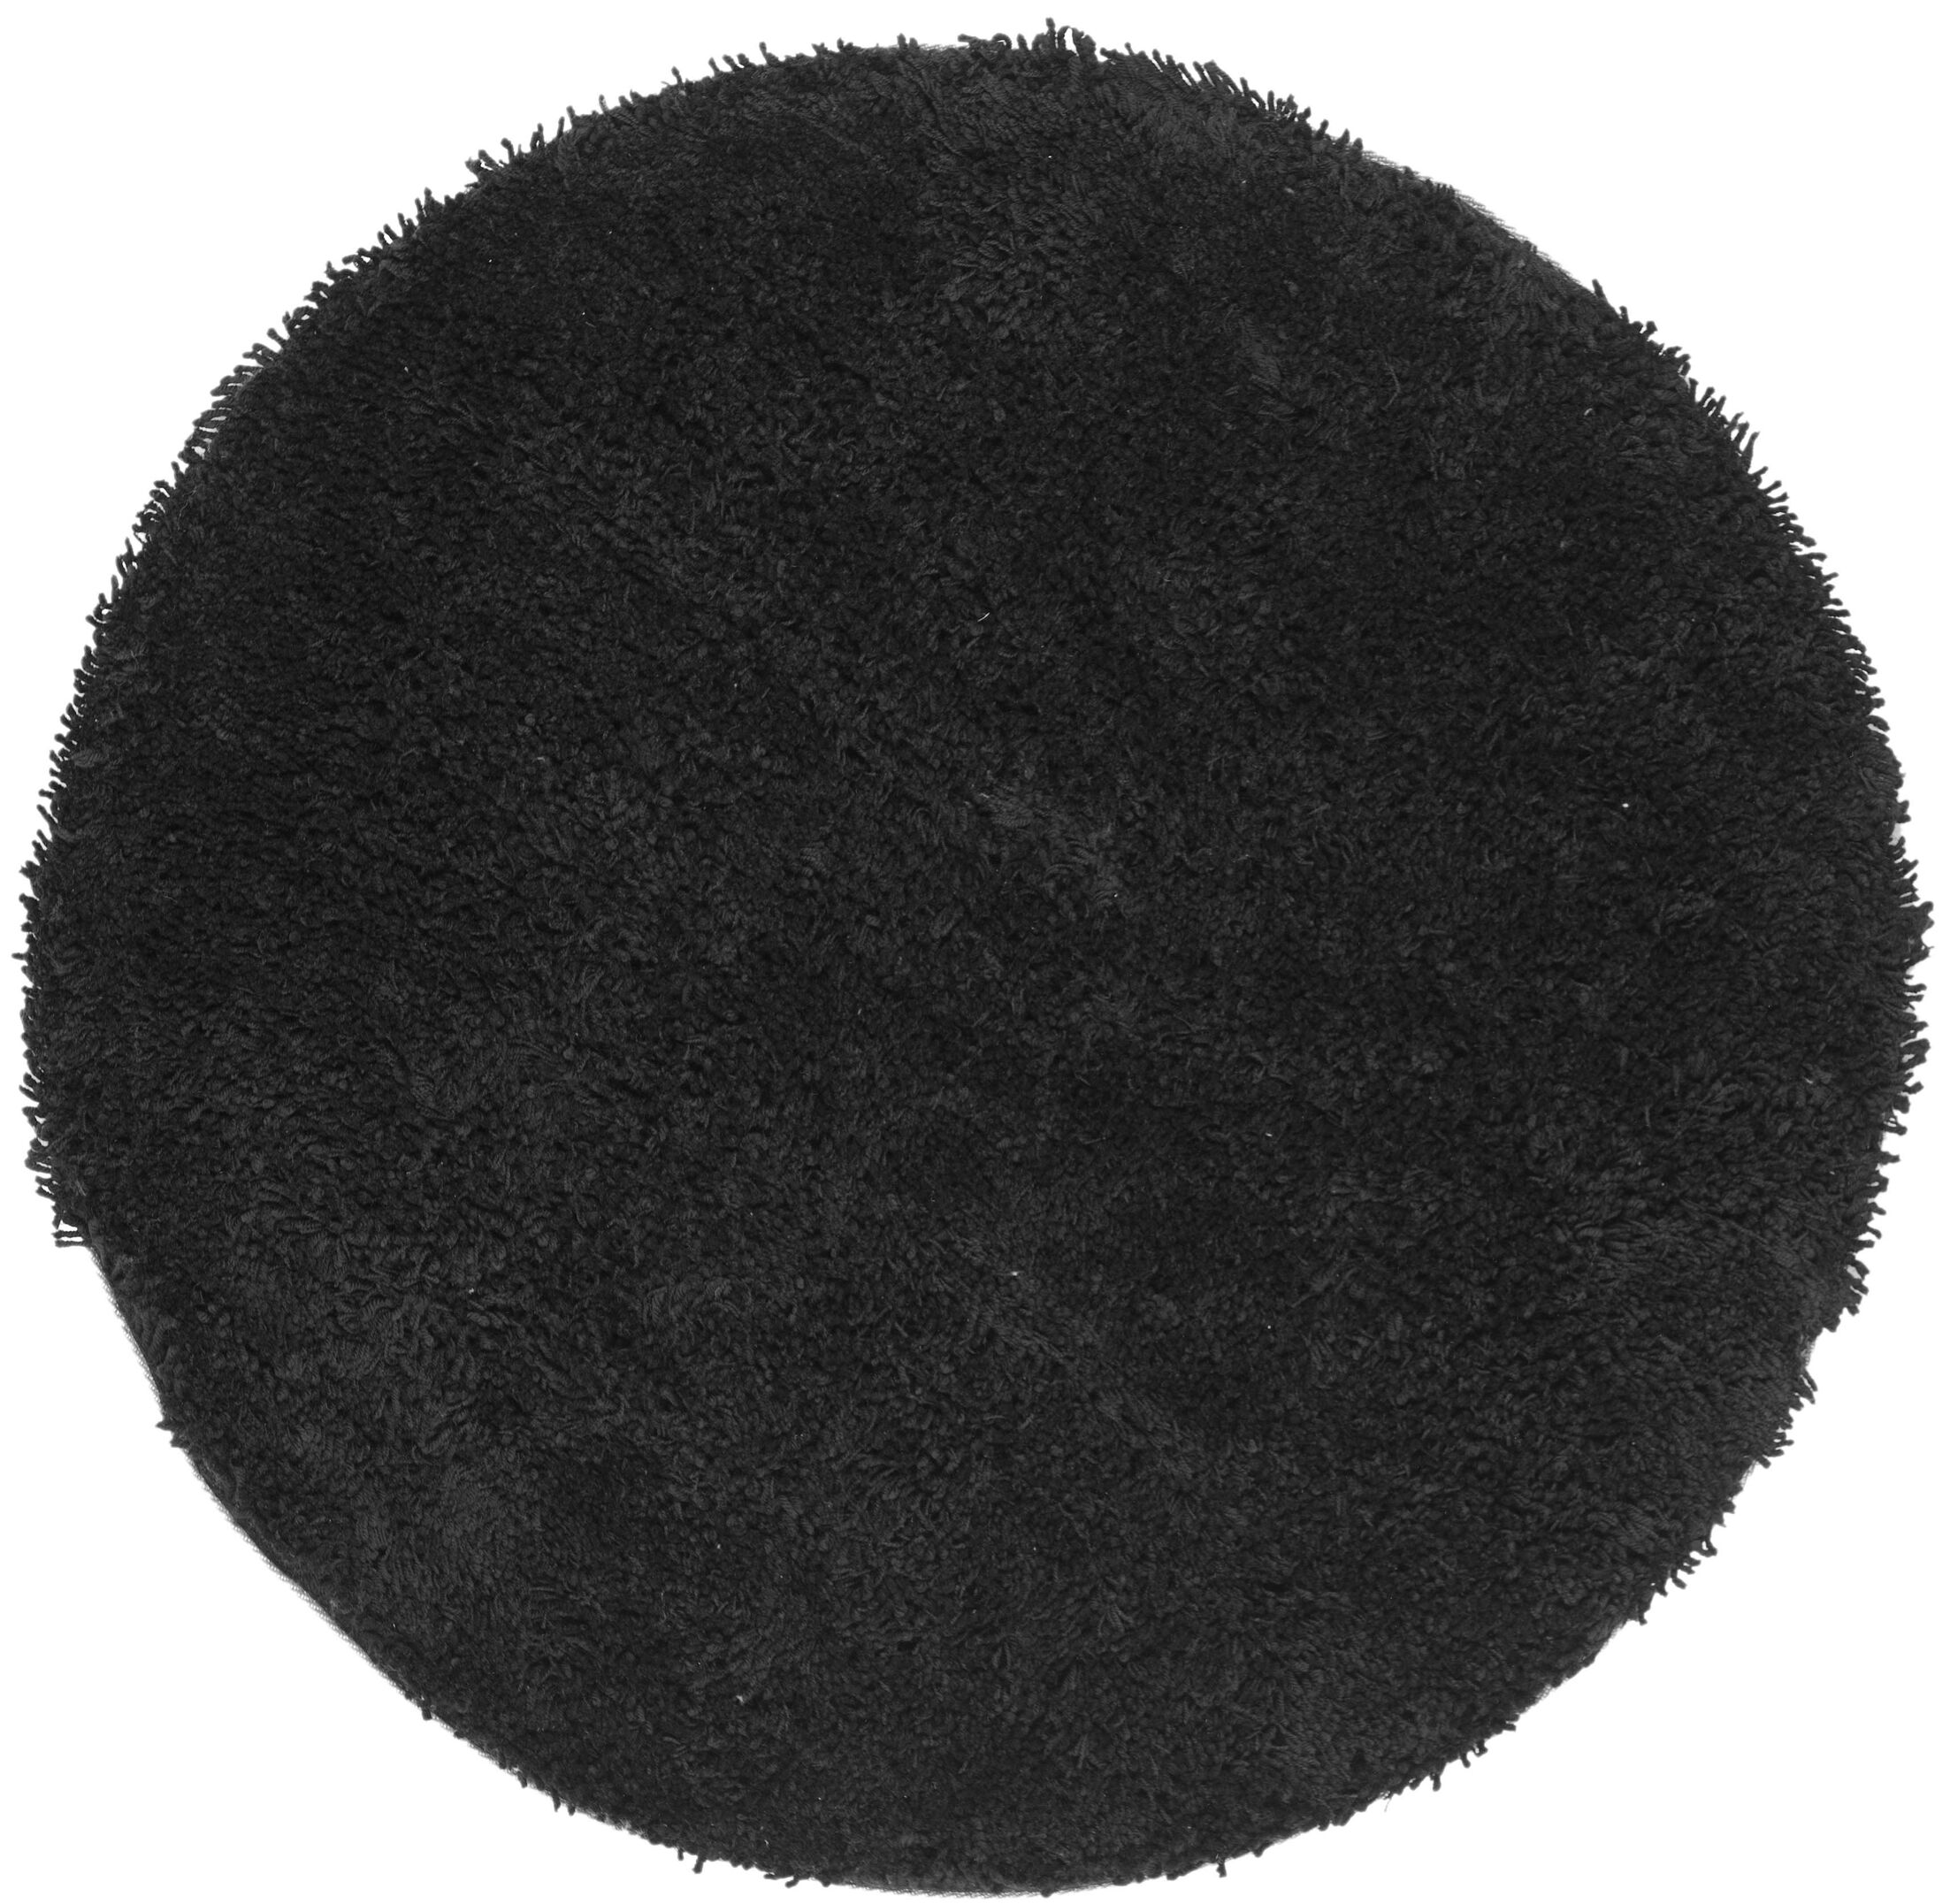 Starr Hill Solid Black Area Rug Rug Size: Round 4'